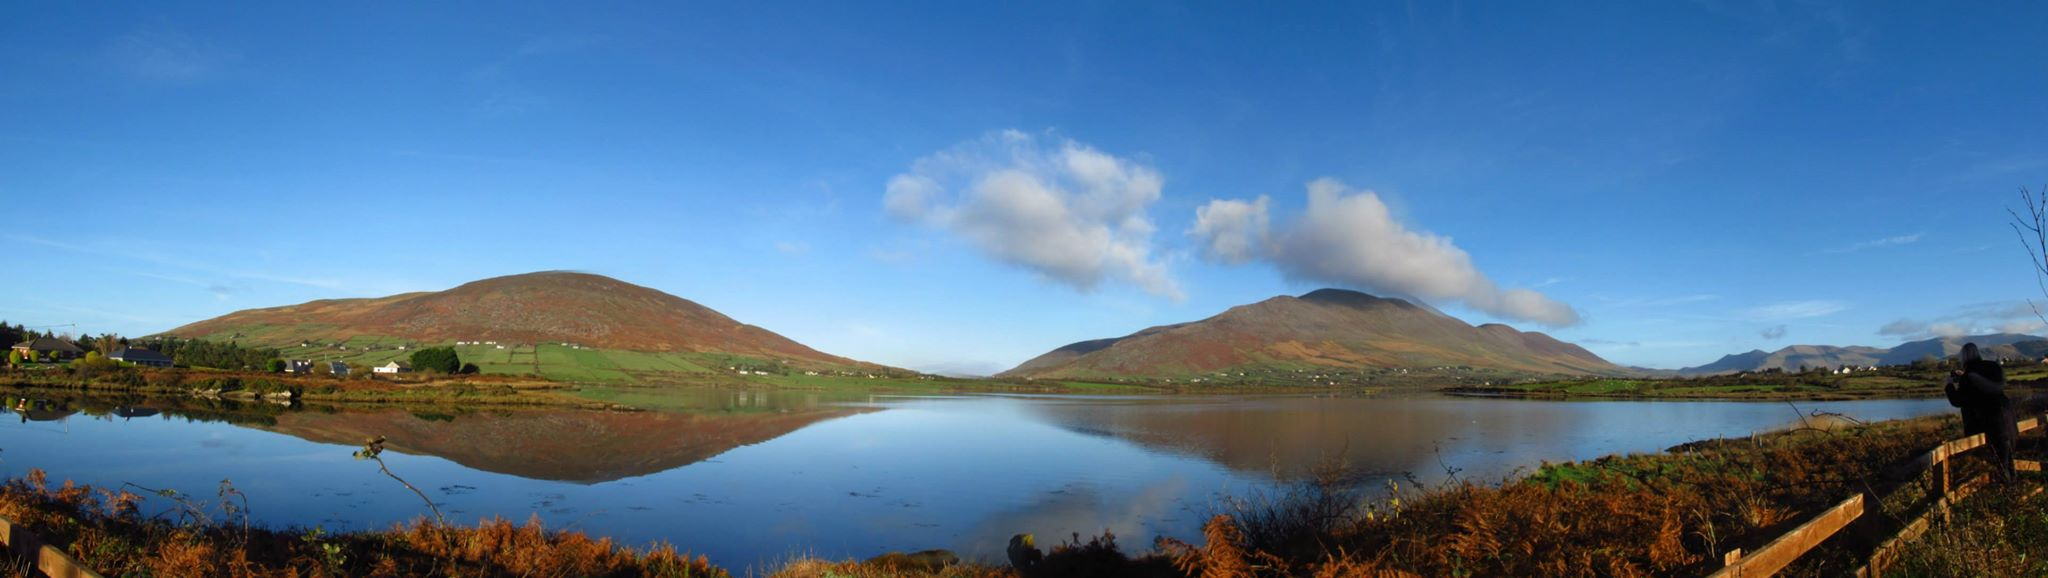 Cahersiveen - a town in Republic of Ireland